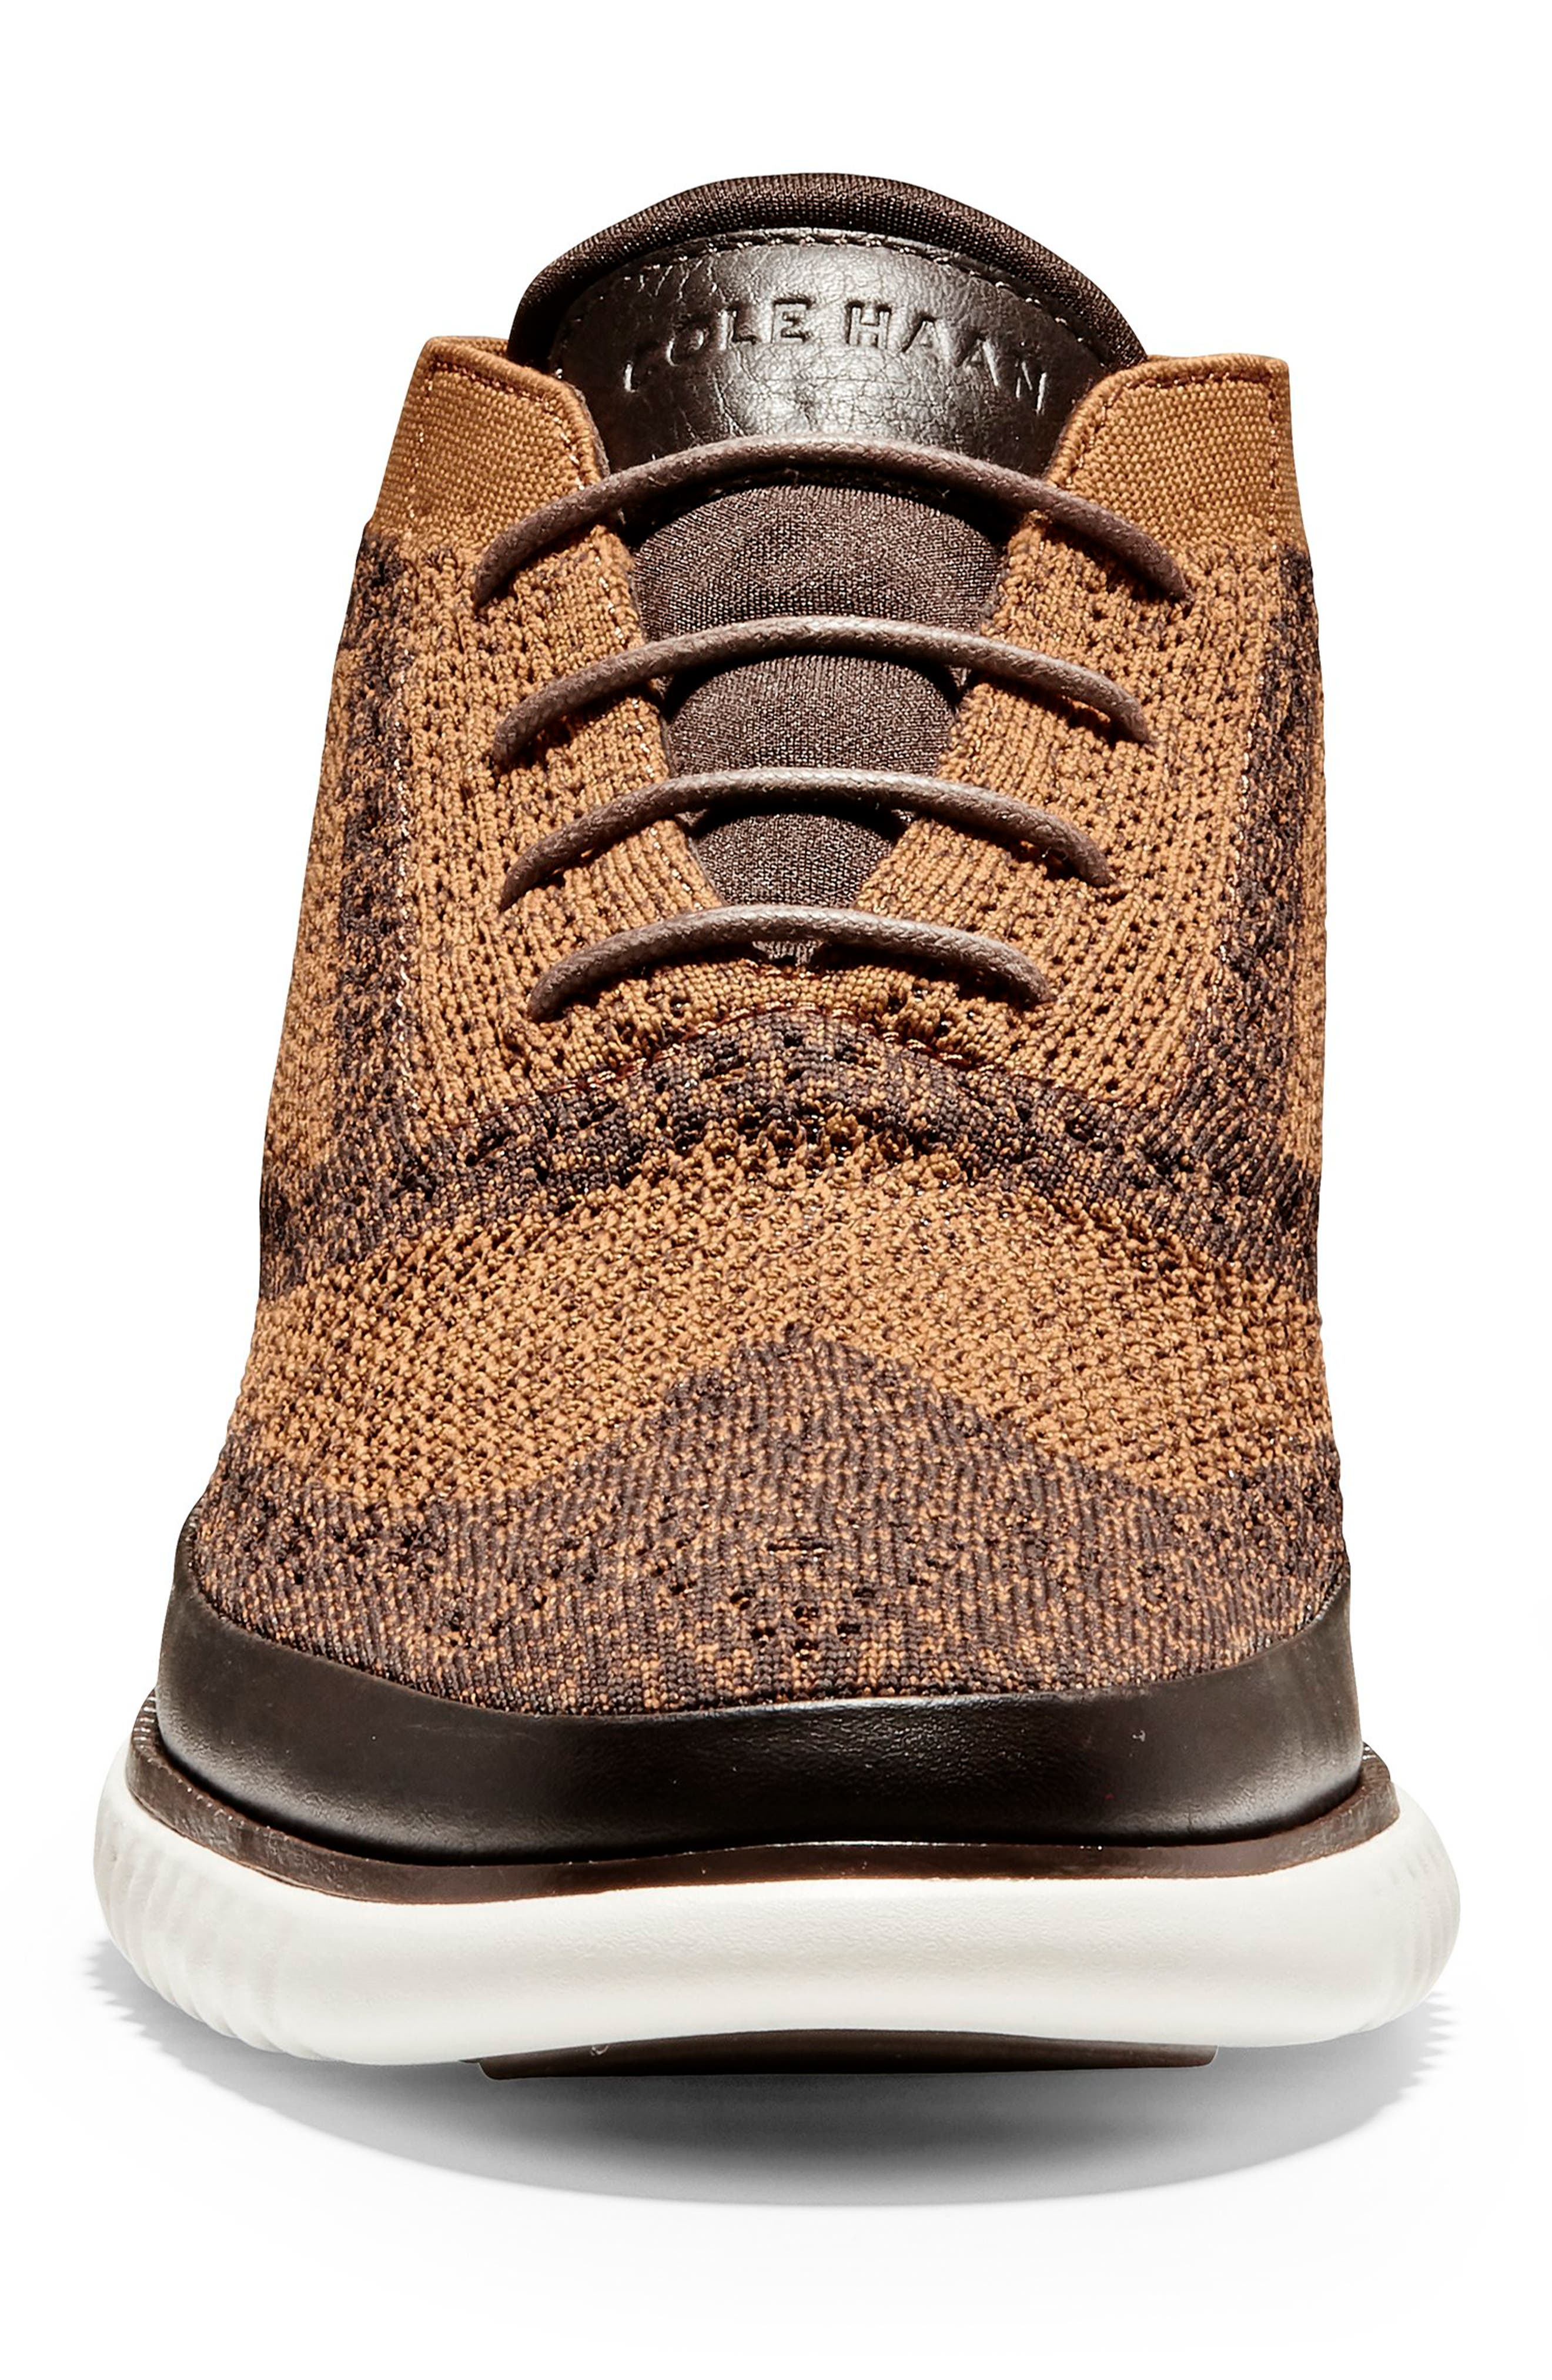 2.ZeroGrand Stitchlite Water Resistant Chukka Boot,                             Alternate thumbnail 4, color,                             BROWN HEATHERED KNIT